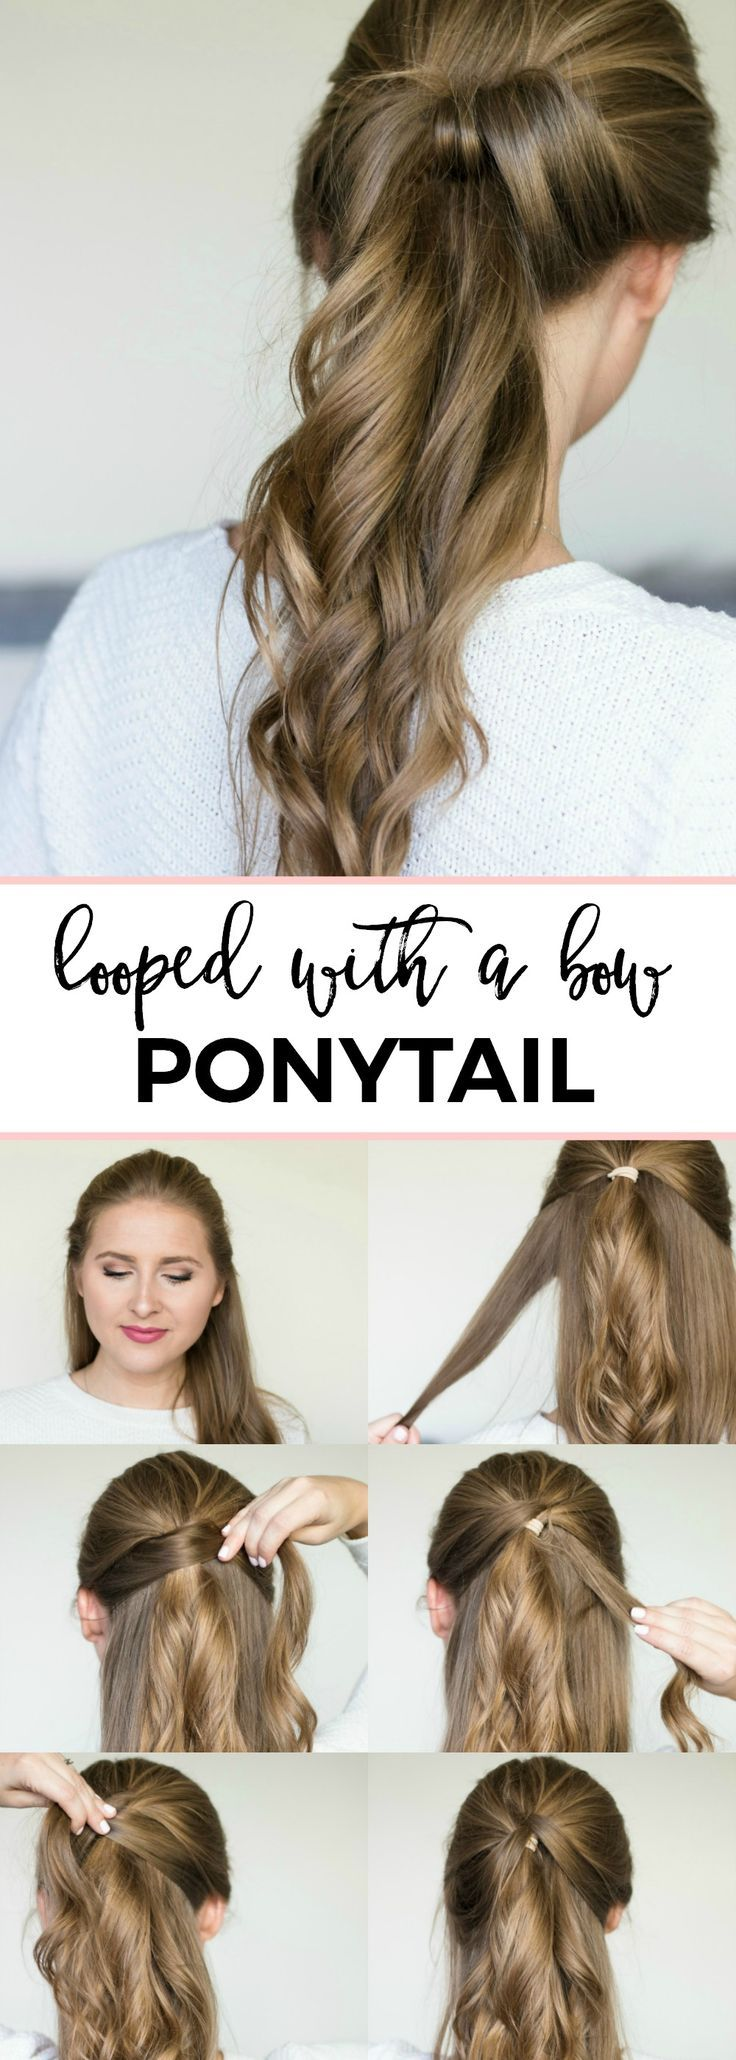 3 Quick And Easy Hair Styles + Step-by-Step Tutorials